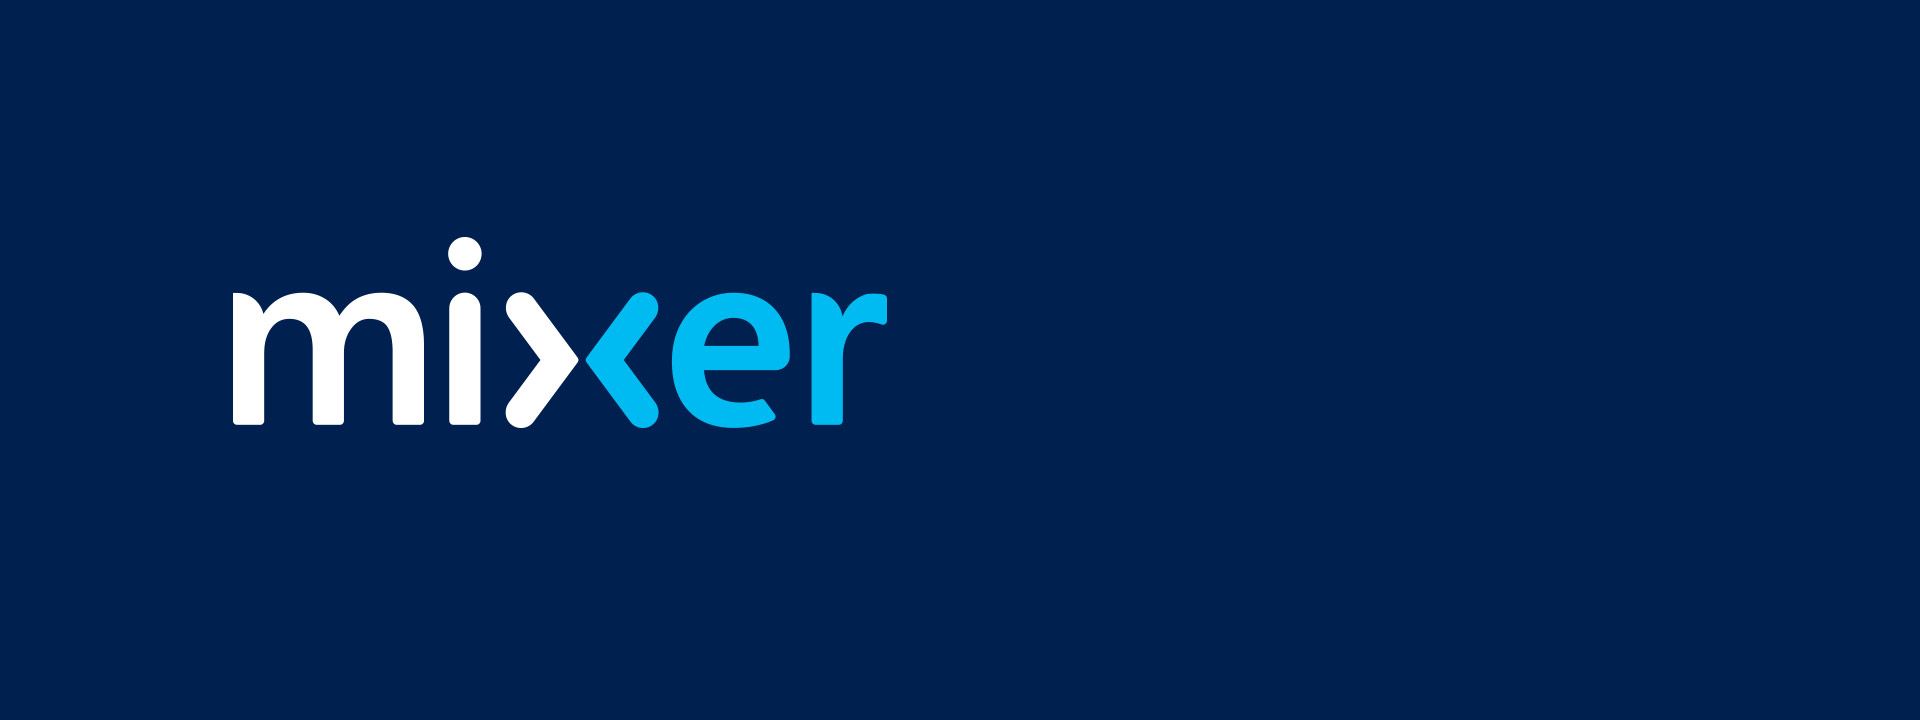 Mixer logo - Stop watching Start playing